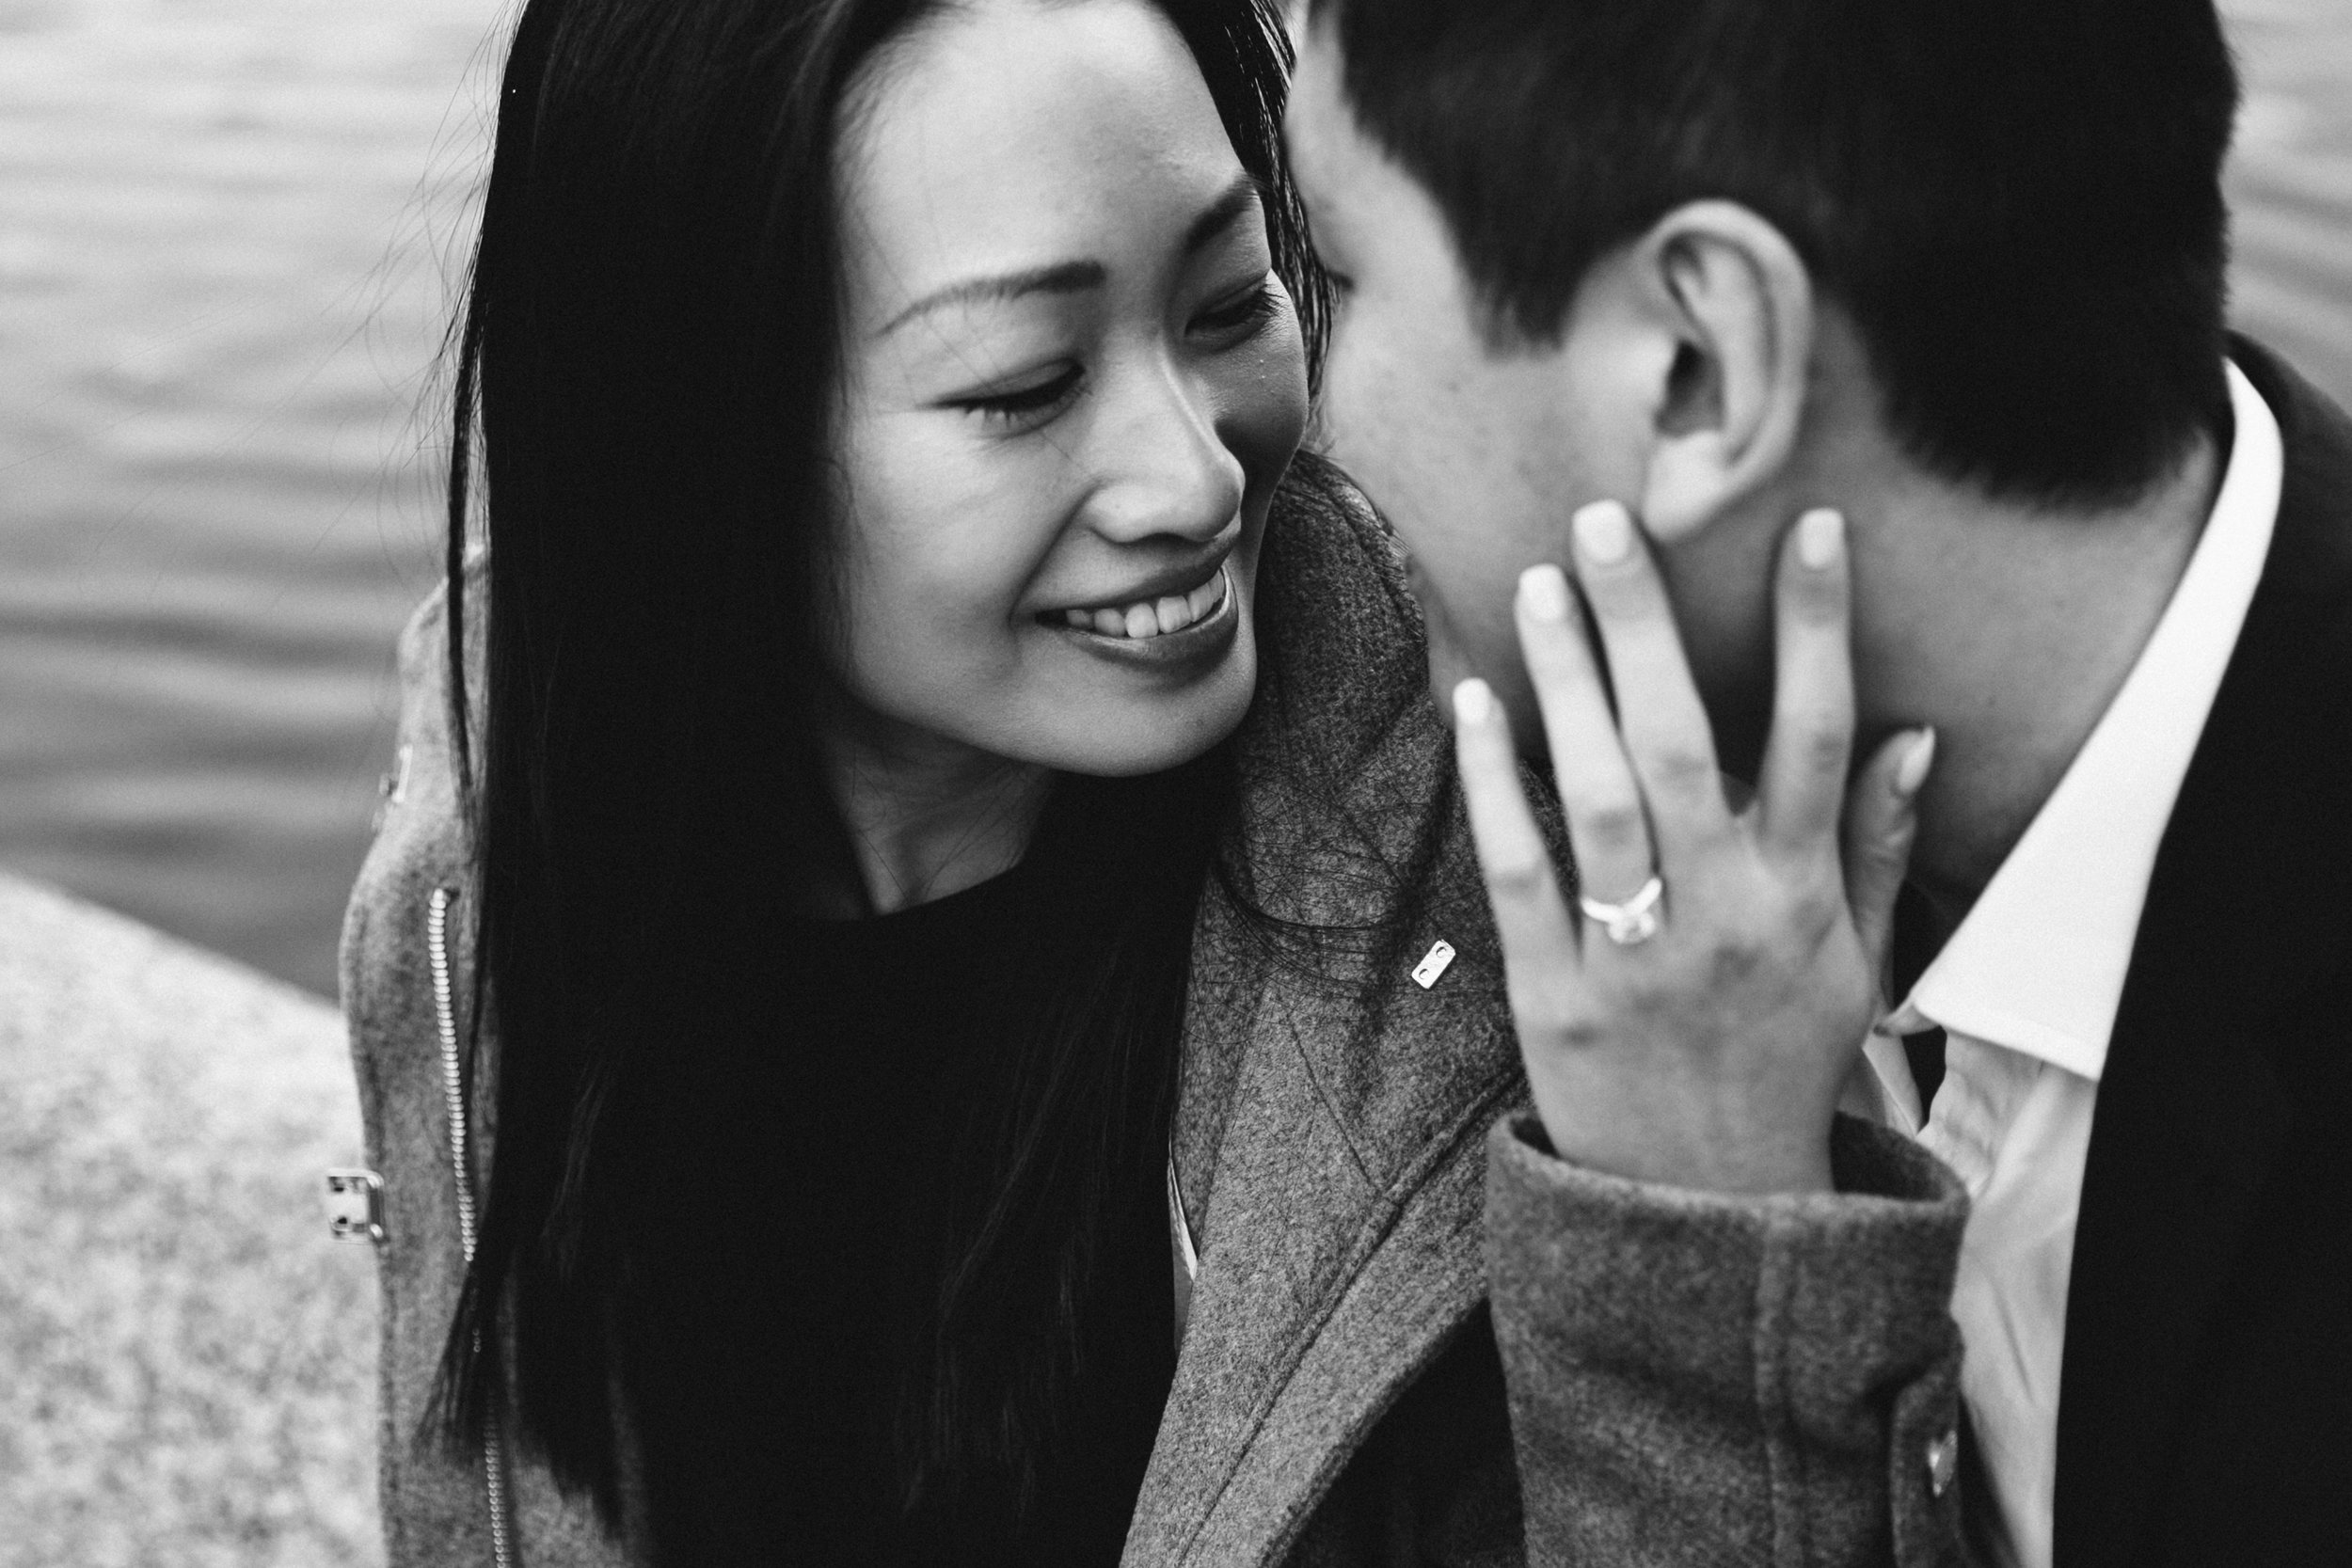 celestehernandez - nyc-central park engagement018.jpg